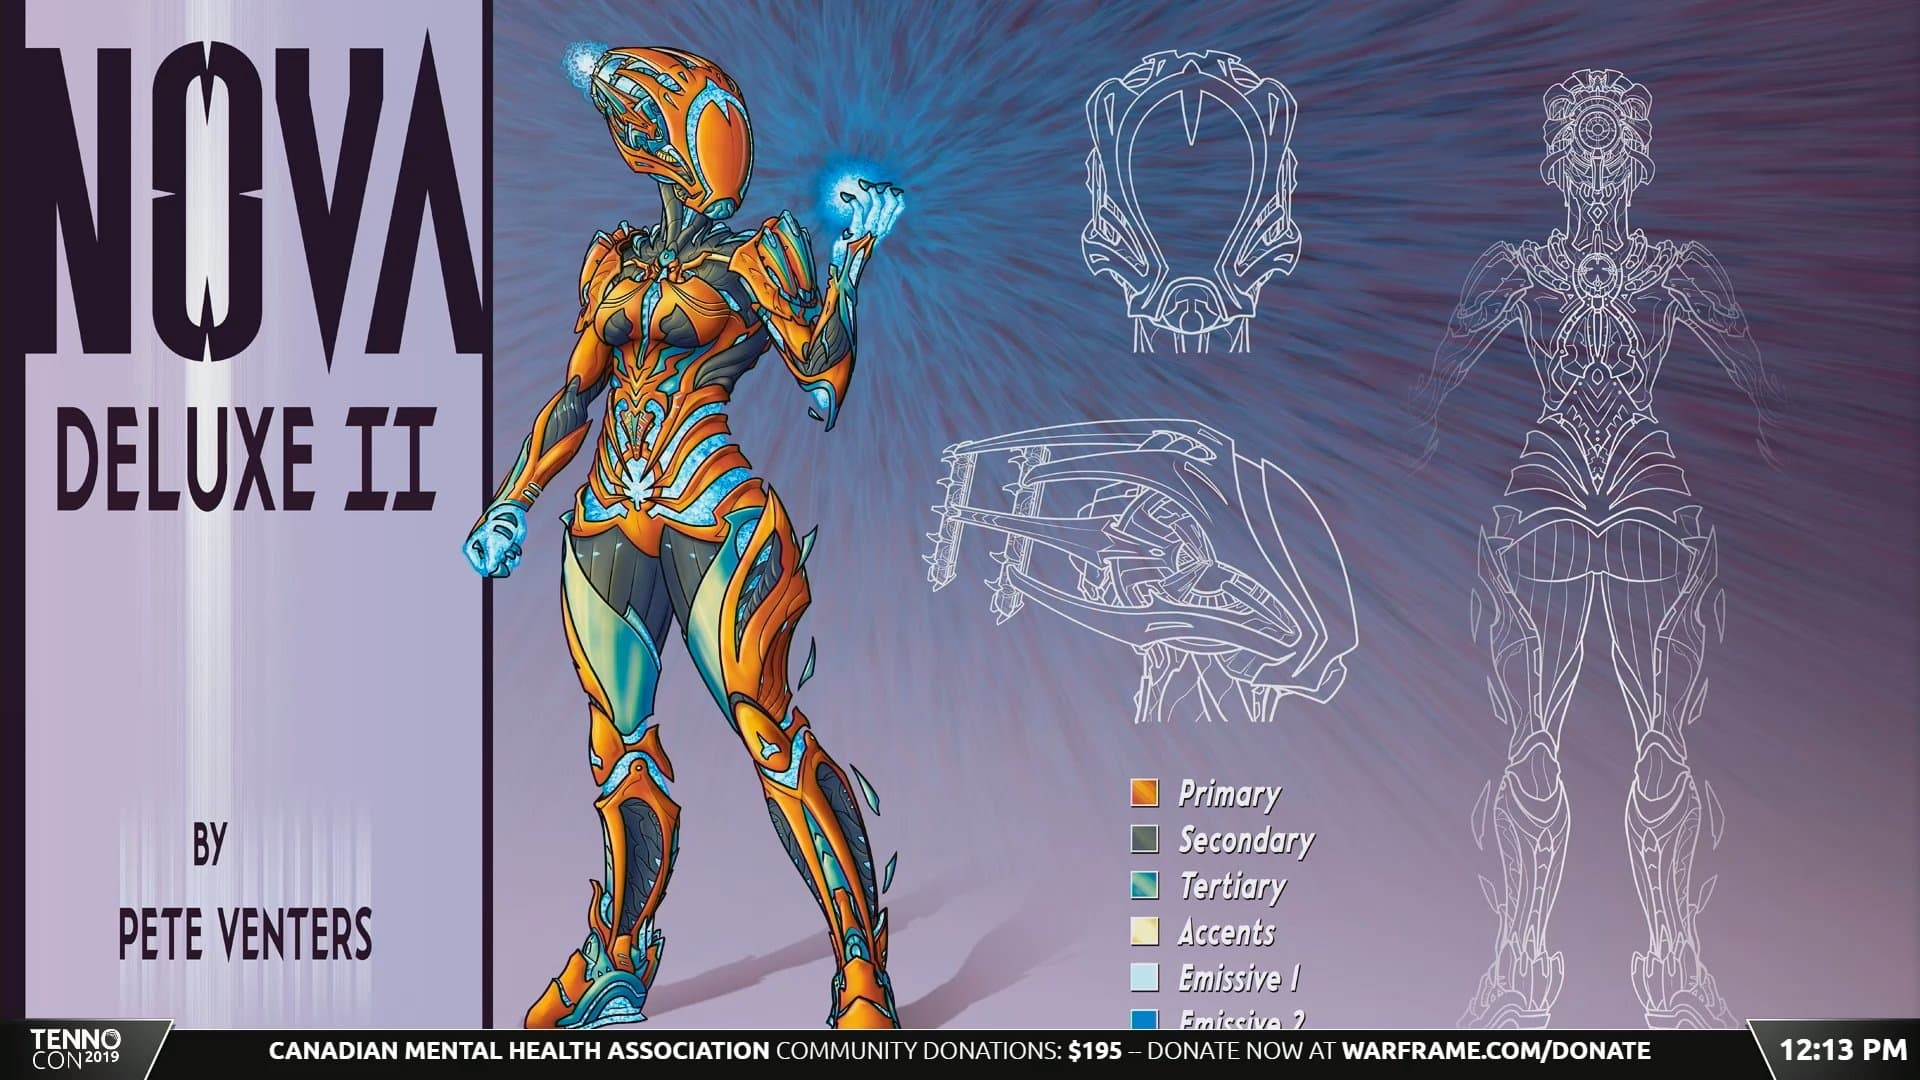 Nova Atomica Color Regions Are Way Too Bright Art Animation Ui Warframe Forums Fascinating, i guess fashion is truly subjective, what i like about nova fashionwise, is her simple and cute design, her legwarmers are probably one of my favorite aspects about her, but thats. nova atomica color regions are way too